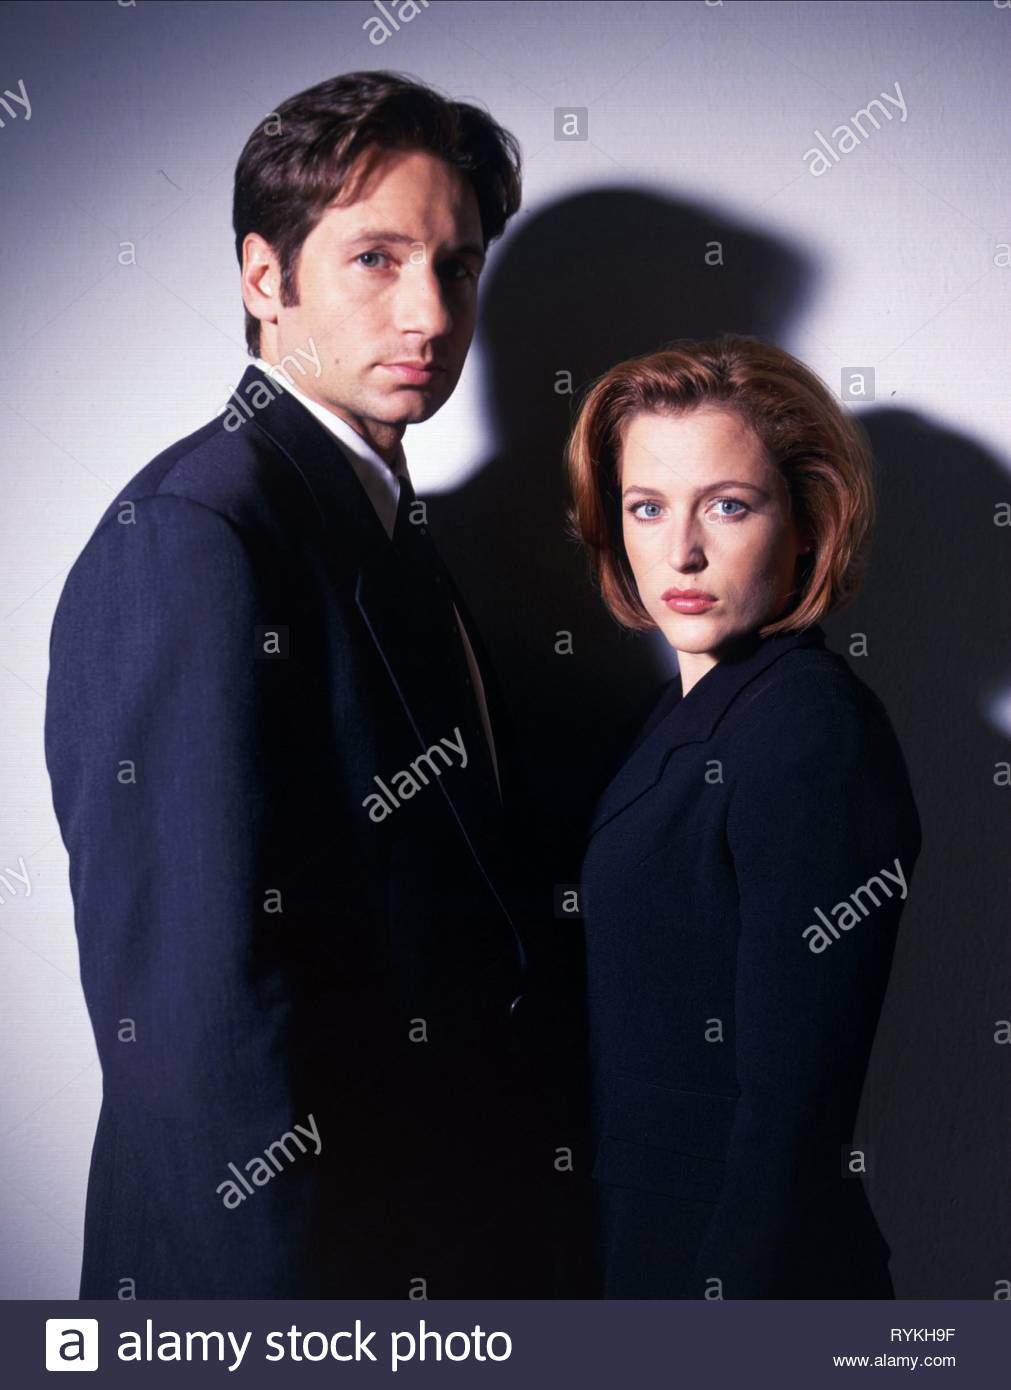 DUCHOVNY,ANDERSON, THE X FILES, 1993 - Stock Image